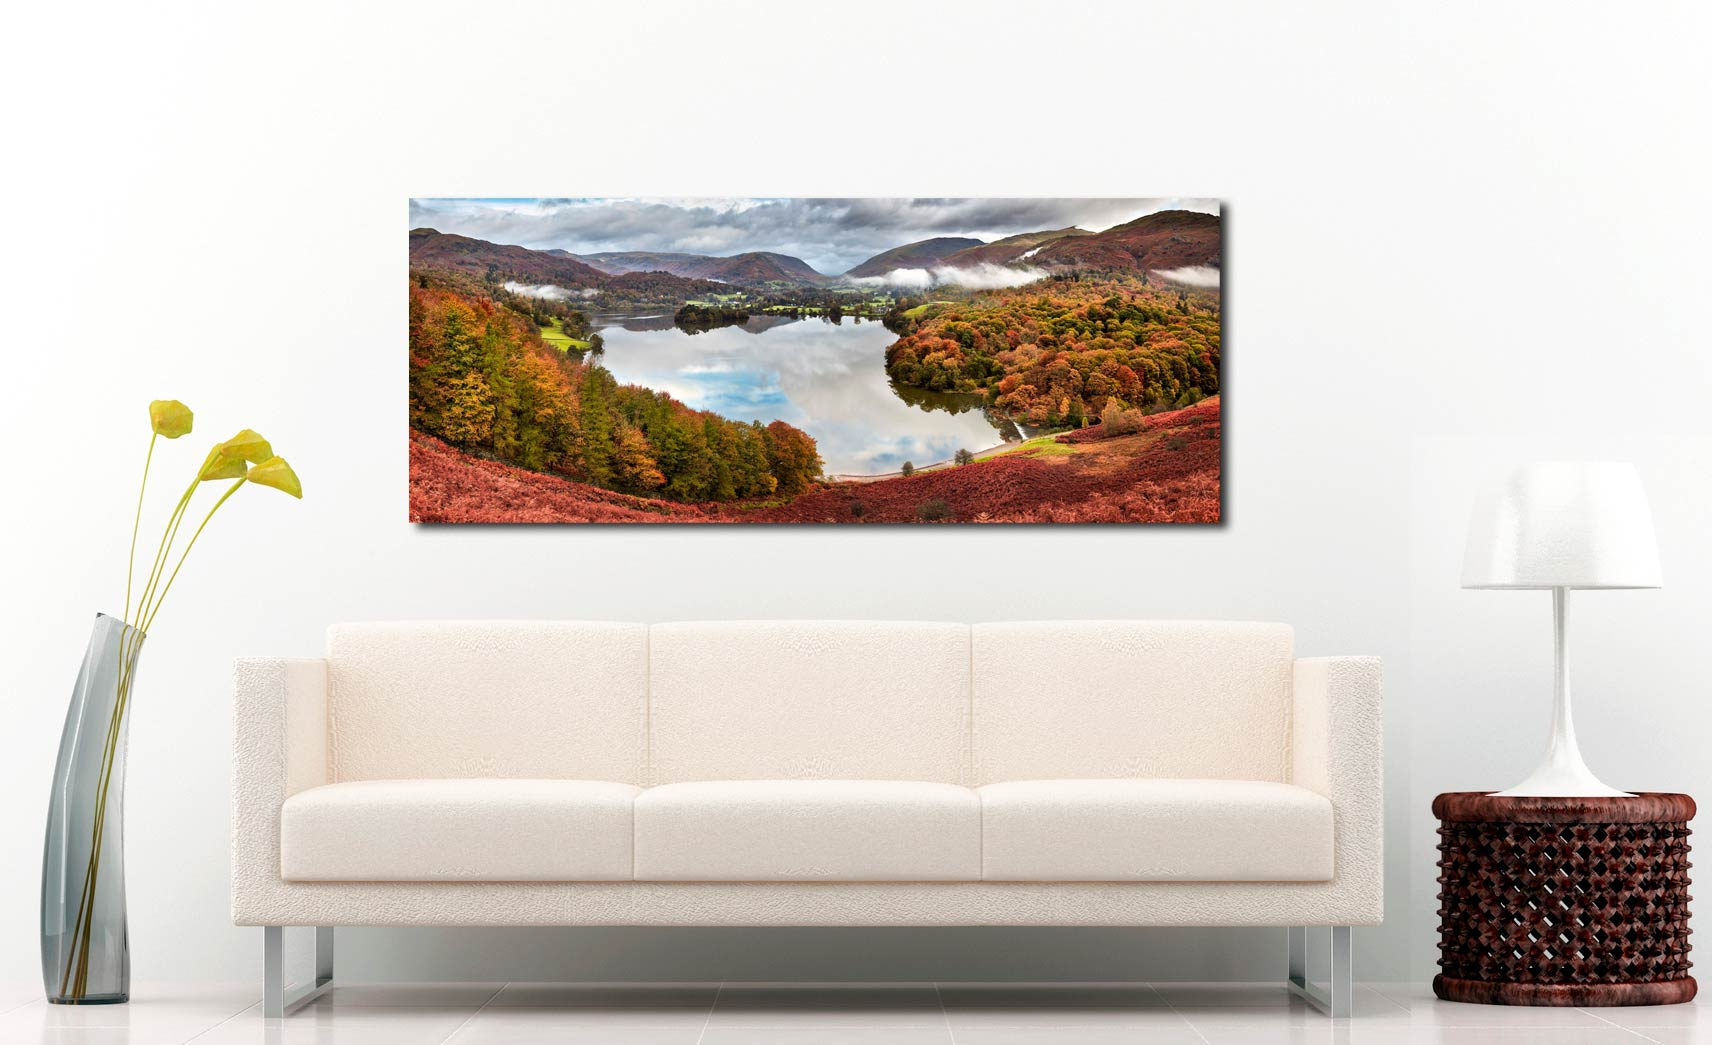 Trees of Grasmere - Print Aluminium Backing With Acrylic Glazing on Wall